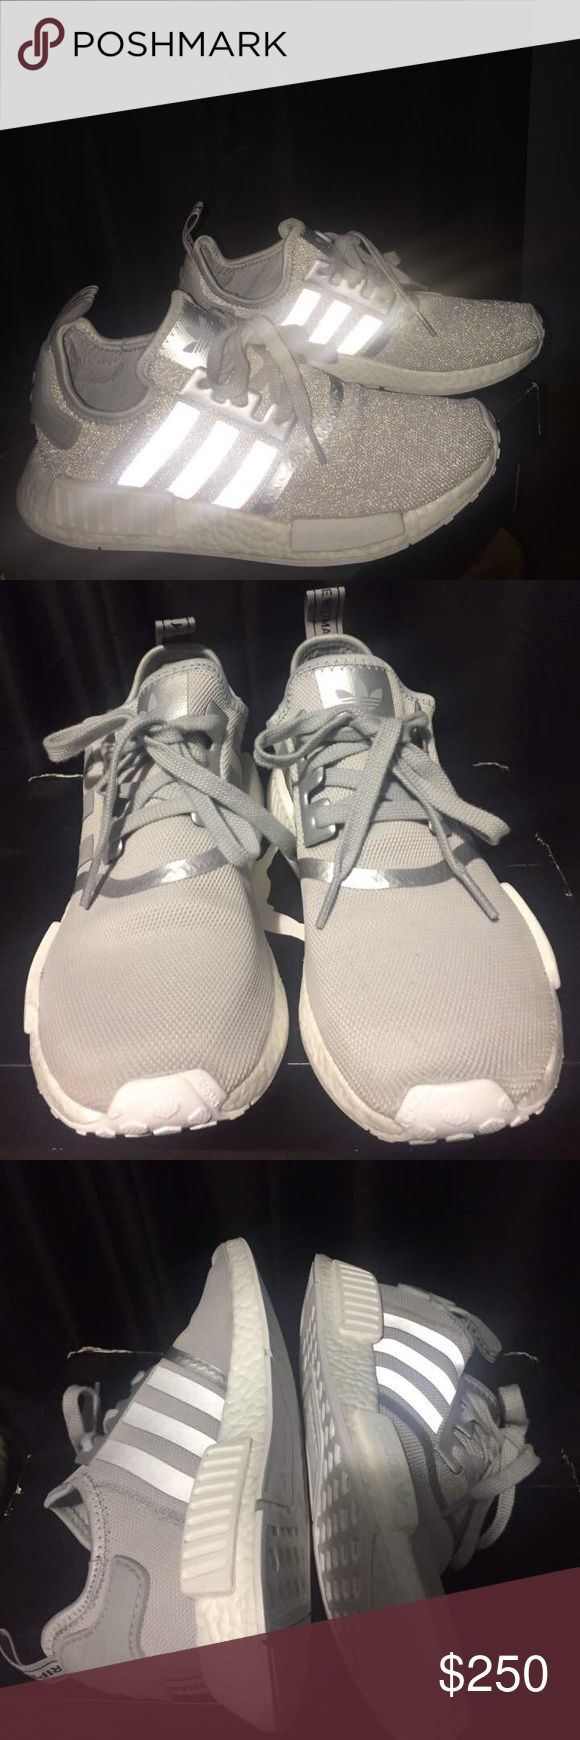 adidas NMD XR1 Primeknit Solid Grey Cheap NMD Shoes